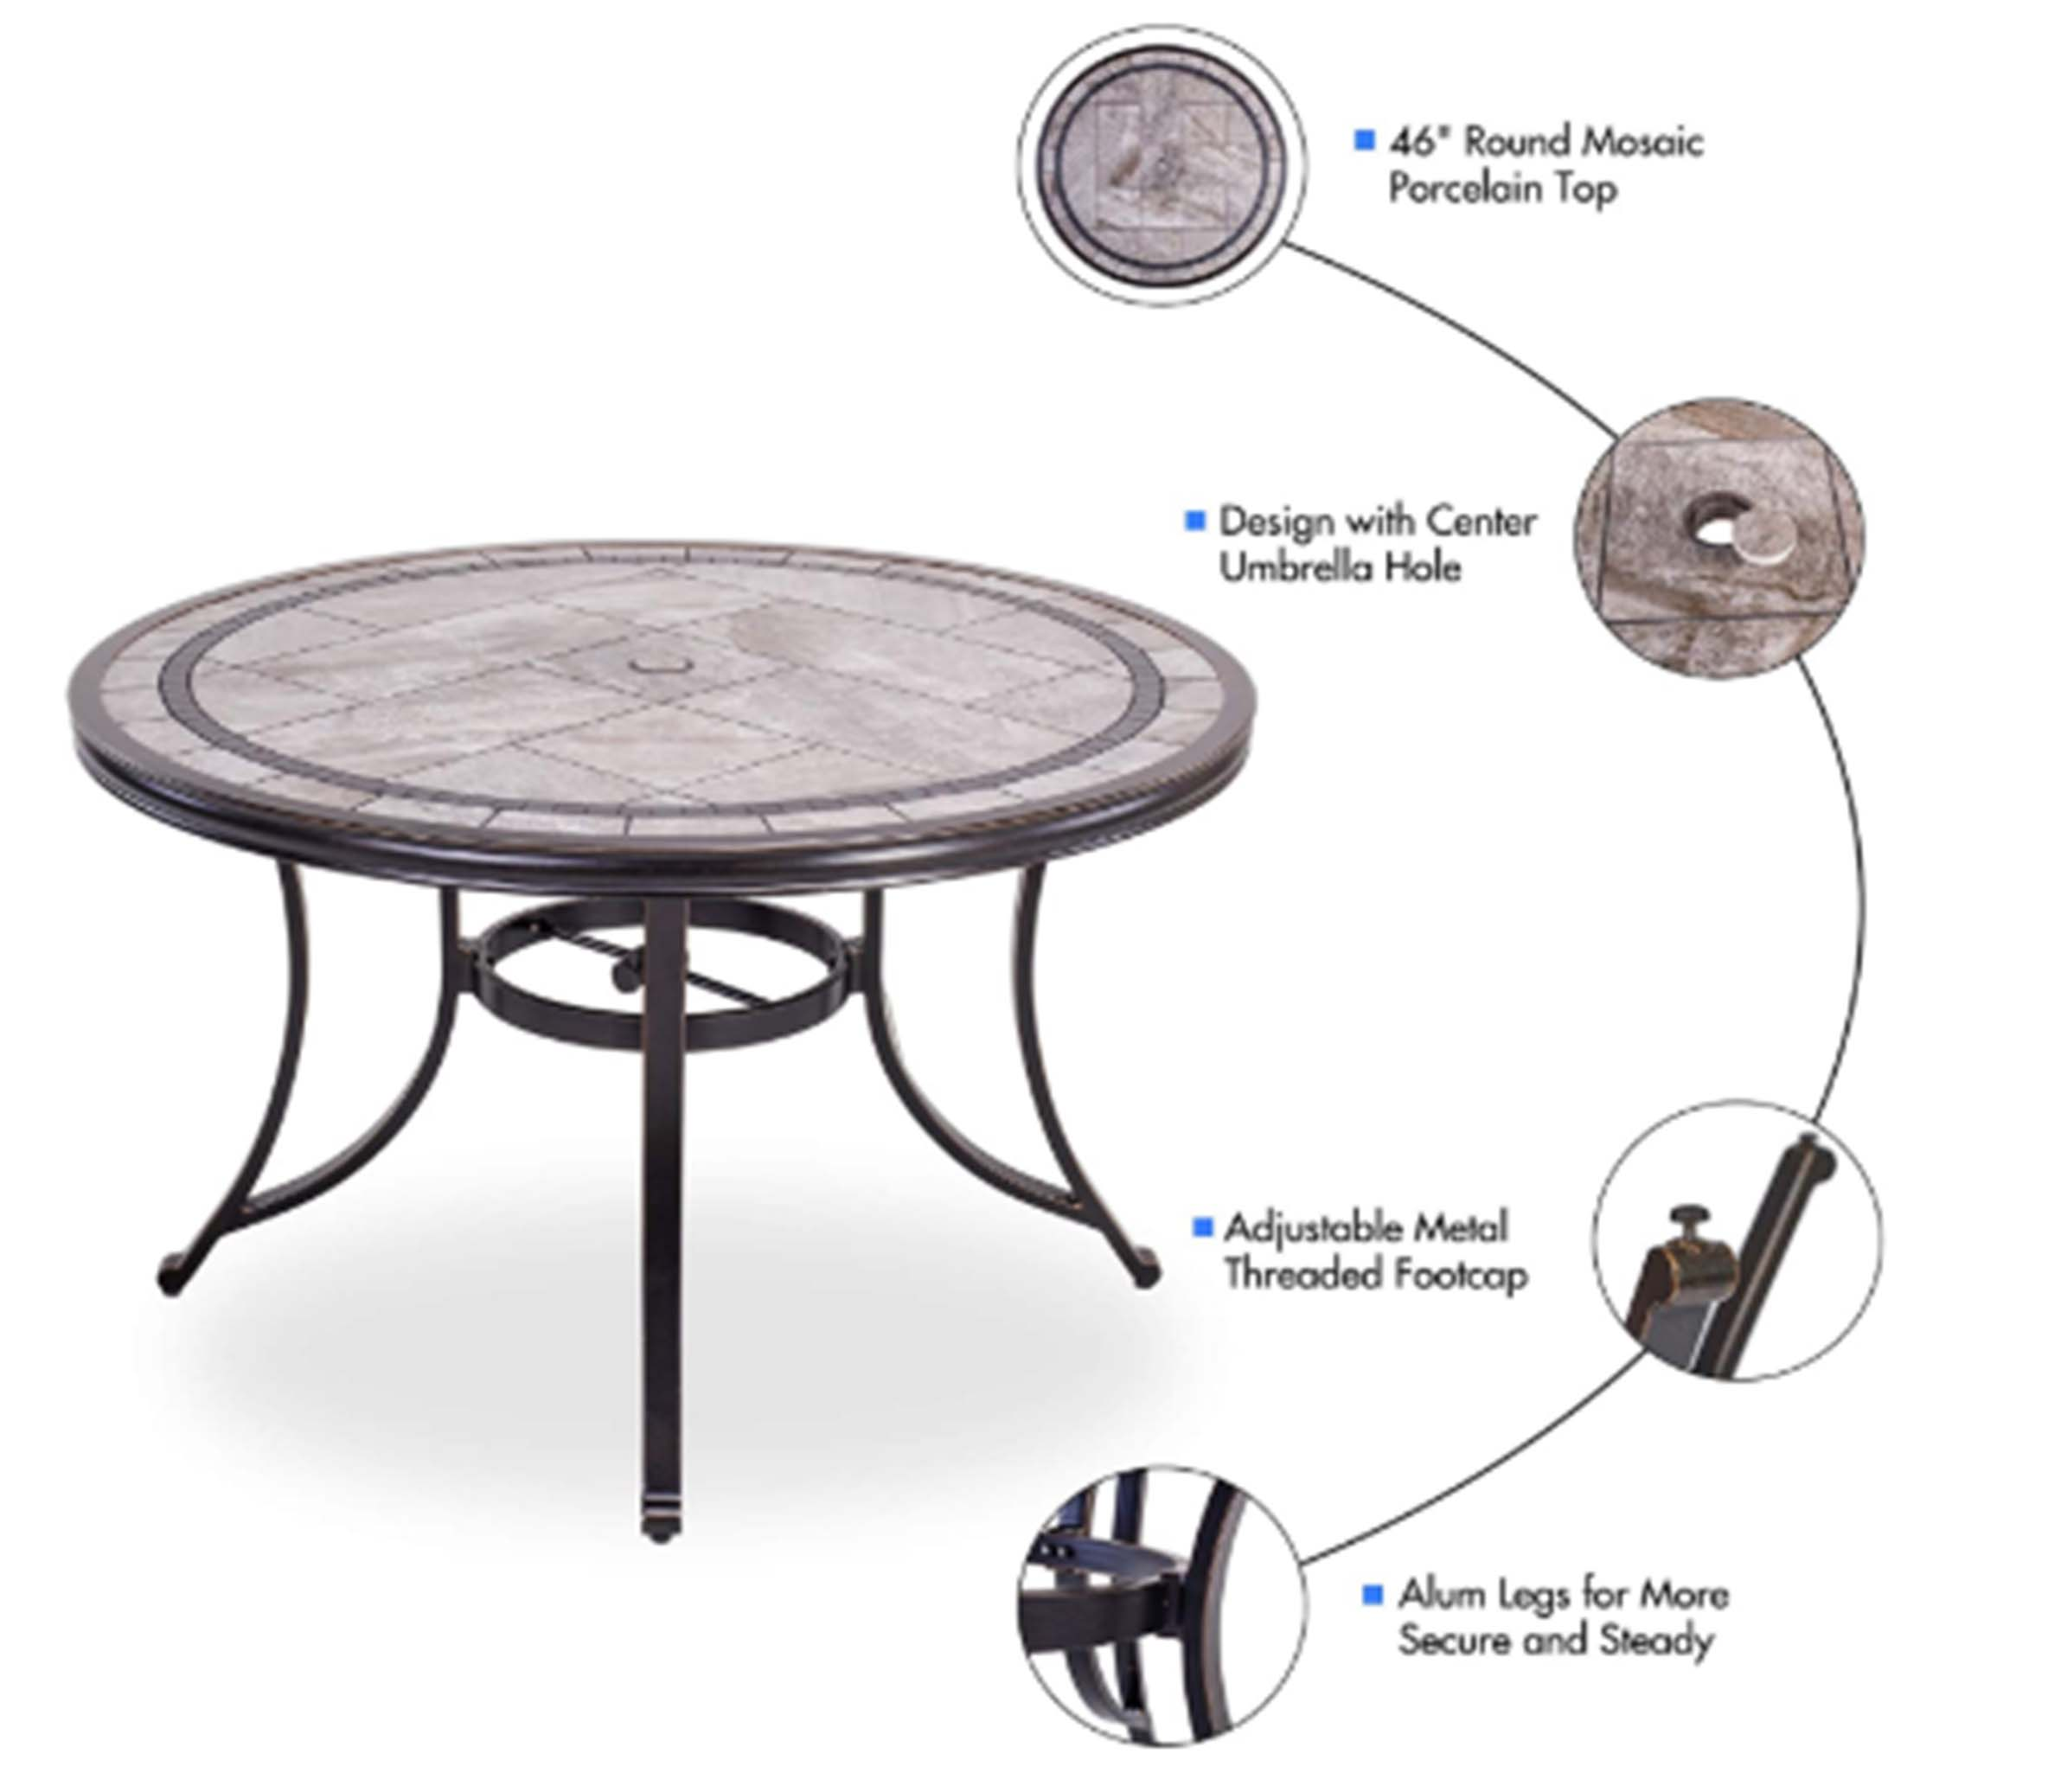 direct wicker single sale outdoor dining table contemporary round a tile top design with heavy duty frames 46 walmart com